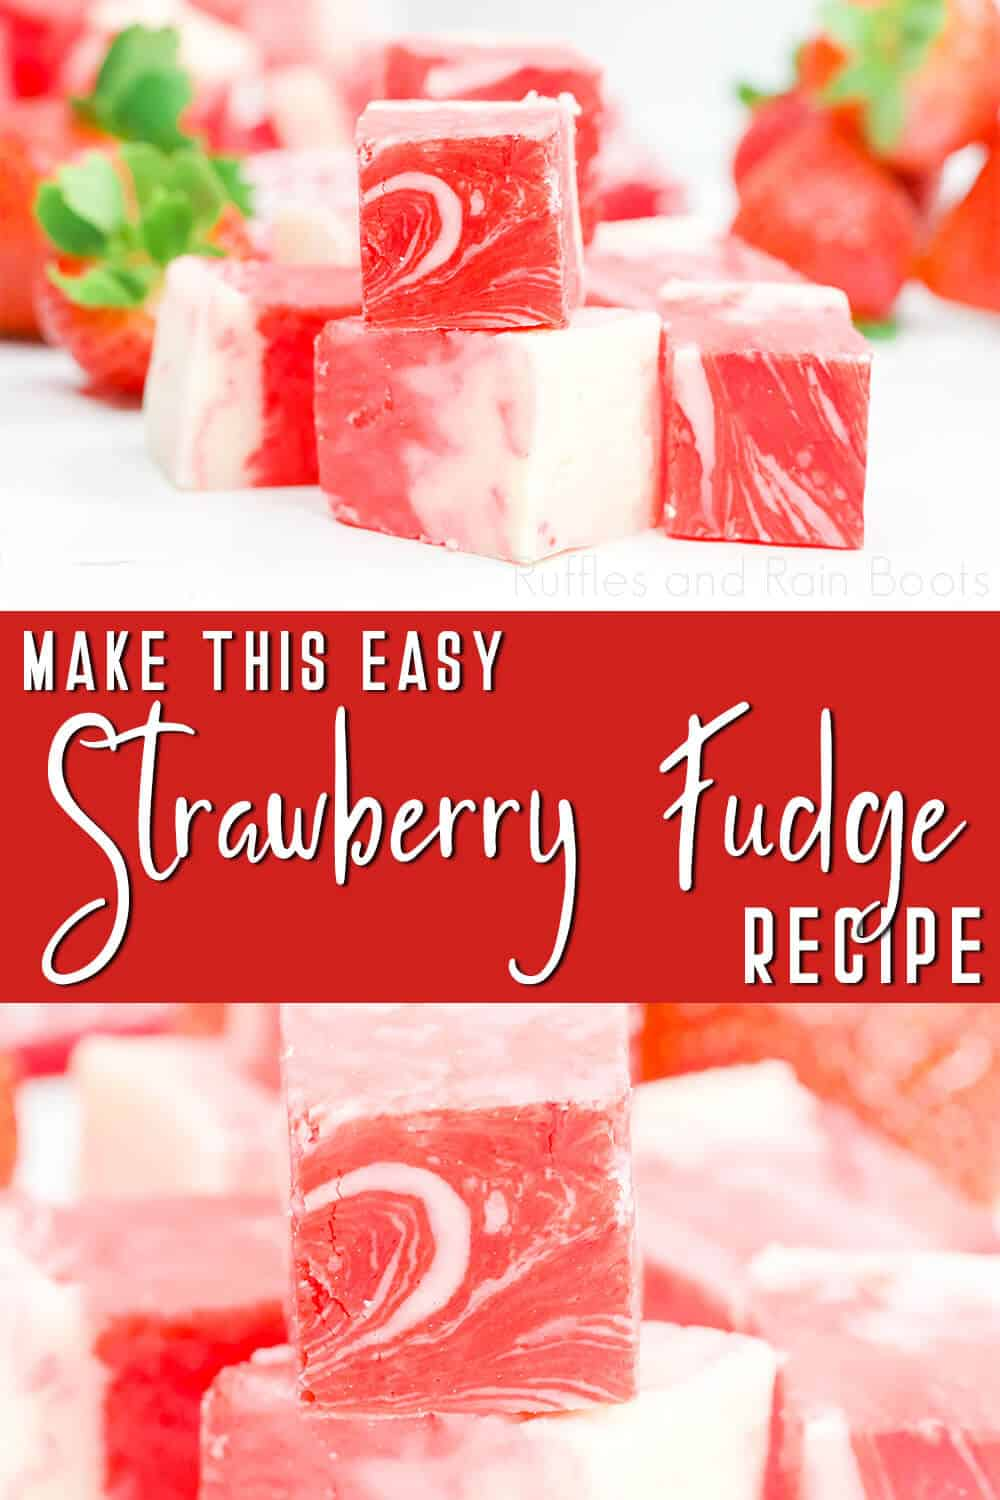 photo collage of valentines fudge recipe with text which reads make this easy strawberry fudge recipe